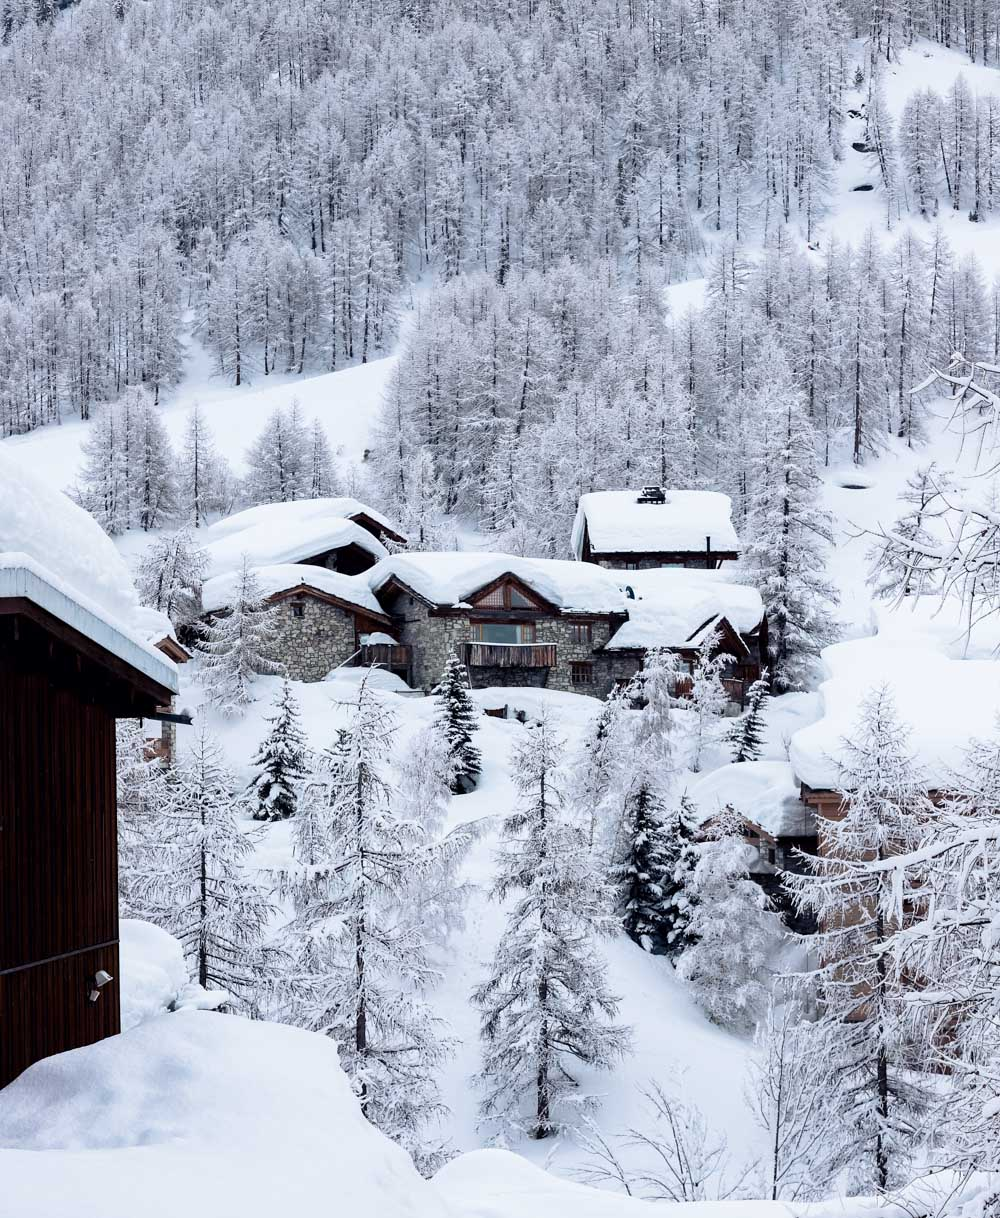 skiferie-val-disere-baby-9-of-20